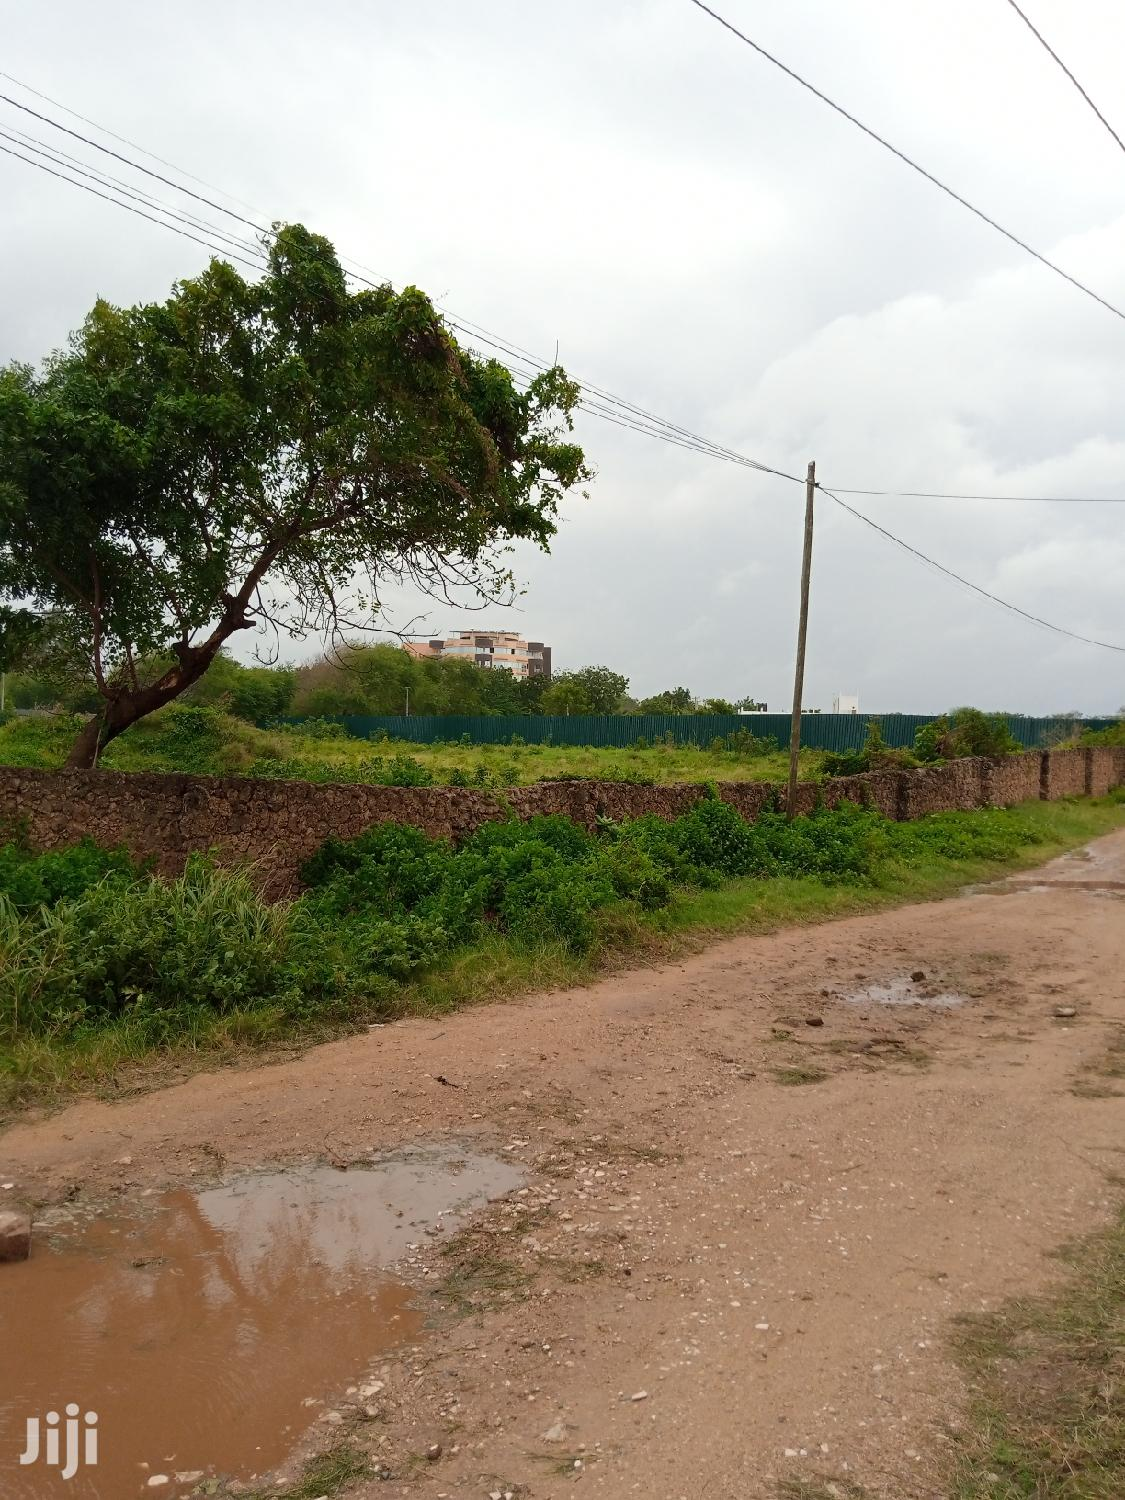 Plot To Let In Nyali 1 And Half Acre | Land & Plots for Rent for sale in Nyali, Mombasa, Kenya